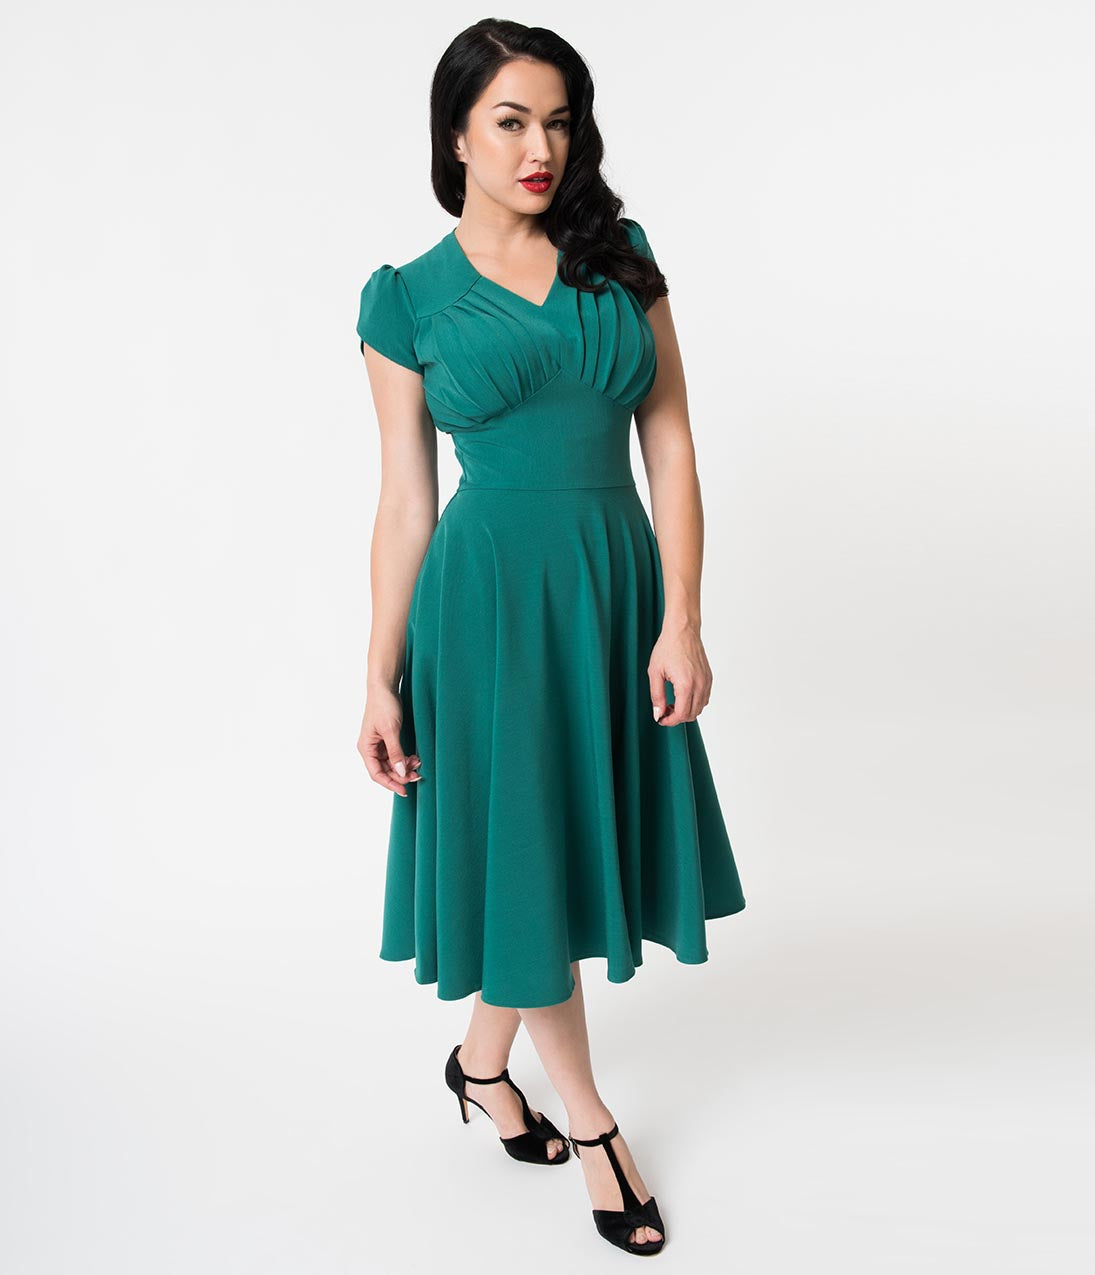 1950s Swing Dresses | 50s Swing Dress Retro Style Emerald Green Petal Sleeve Pleated Swing Dress $98.00 AT vintagedancer.com